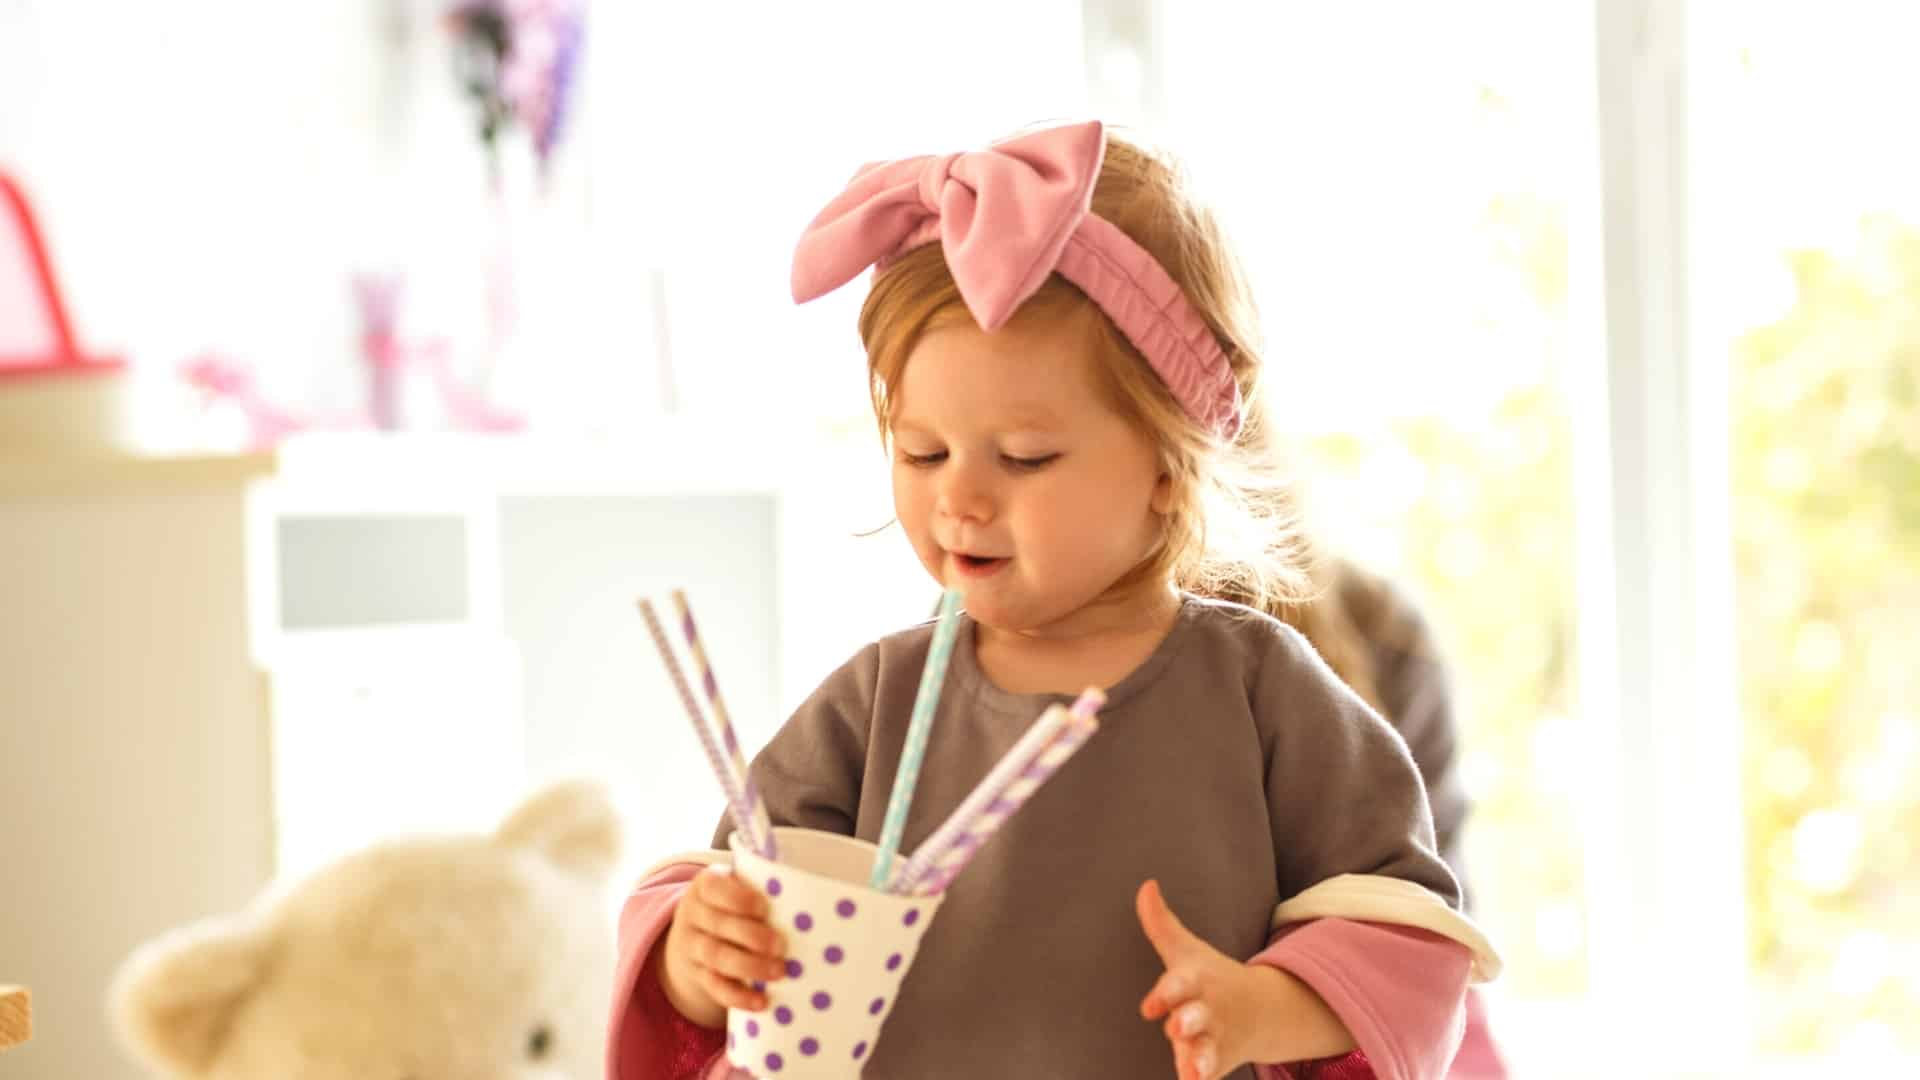 When can a child drink through a straw?